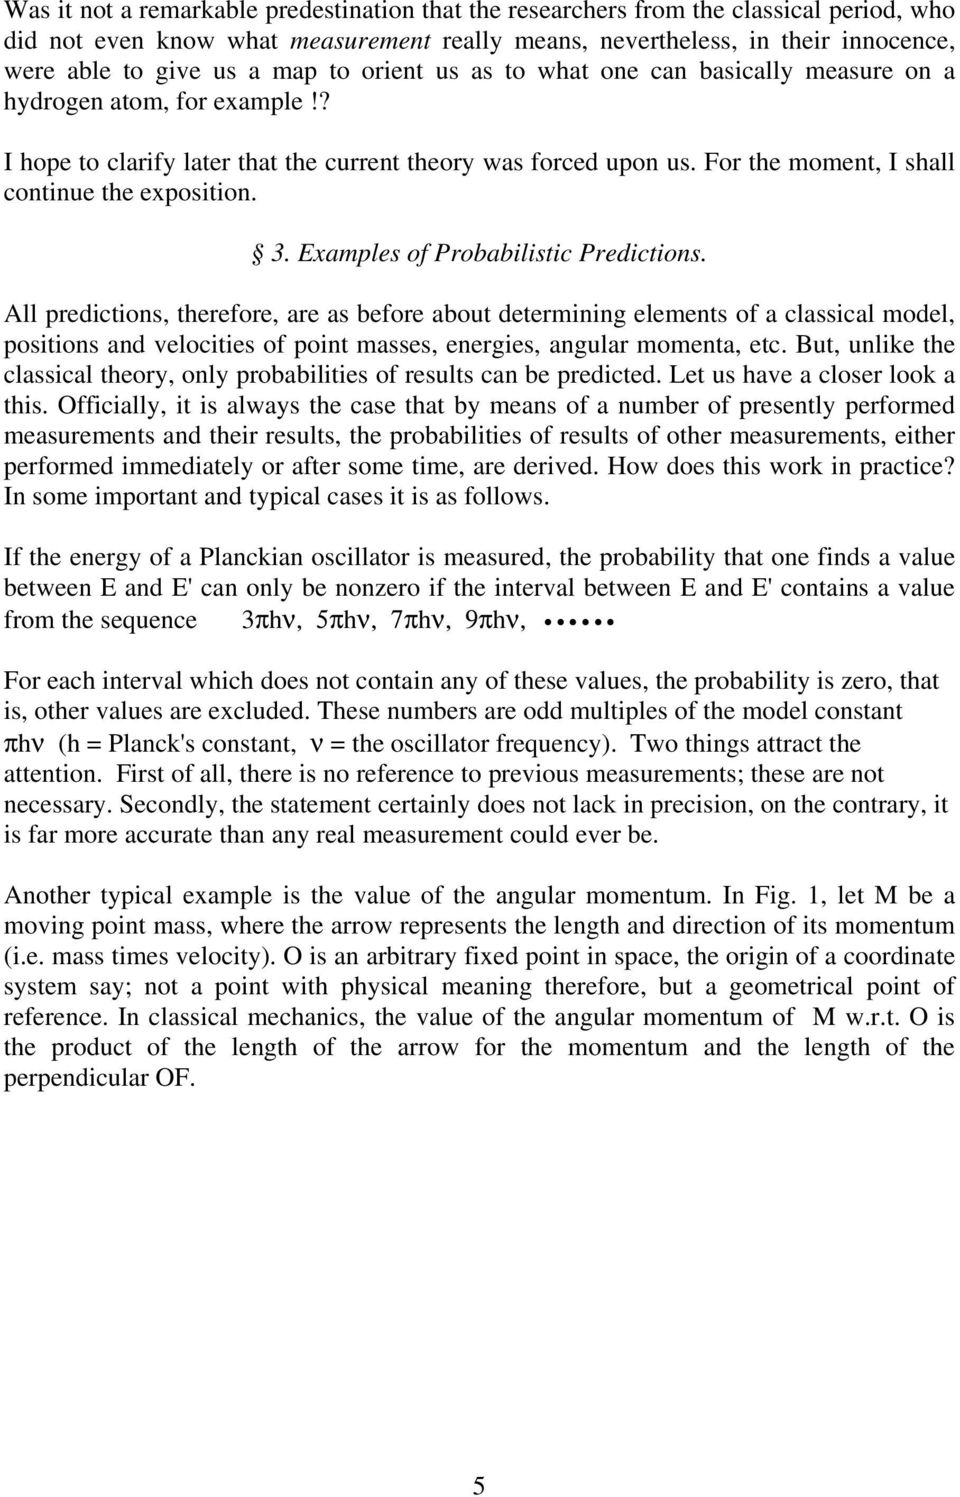 For the moment, I shall continue the exposition. 3. Examples of Probabilistic Predictions.